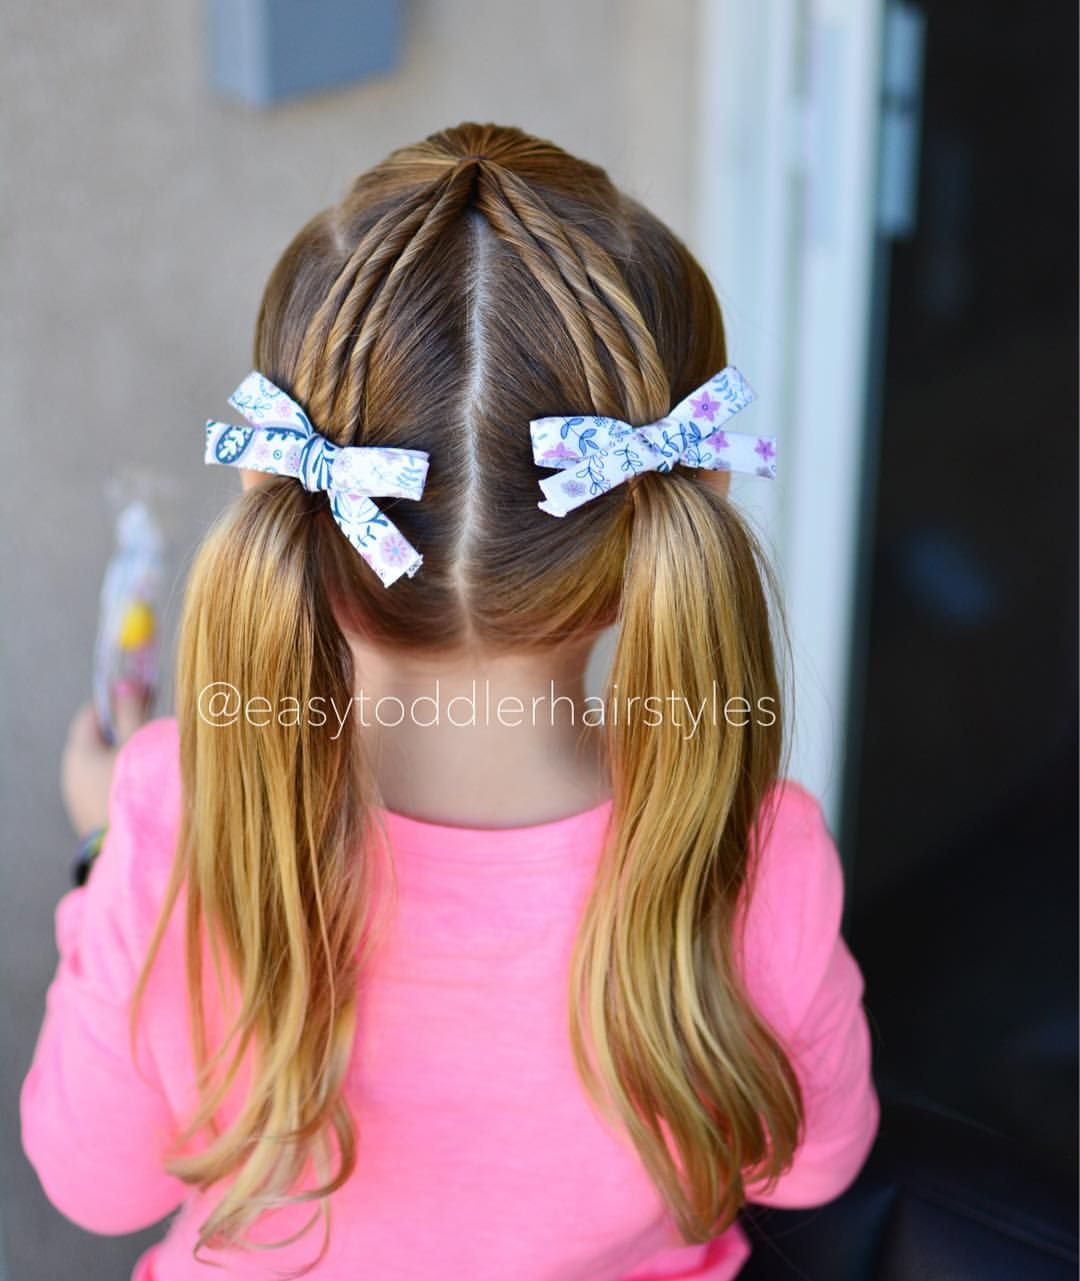 Twist Into Pigtails Girl Hair Dos Little Girl Hairstyles Girl Hairstyles